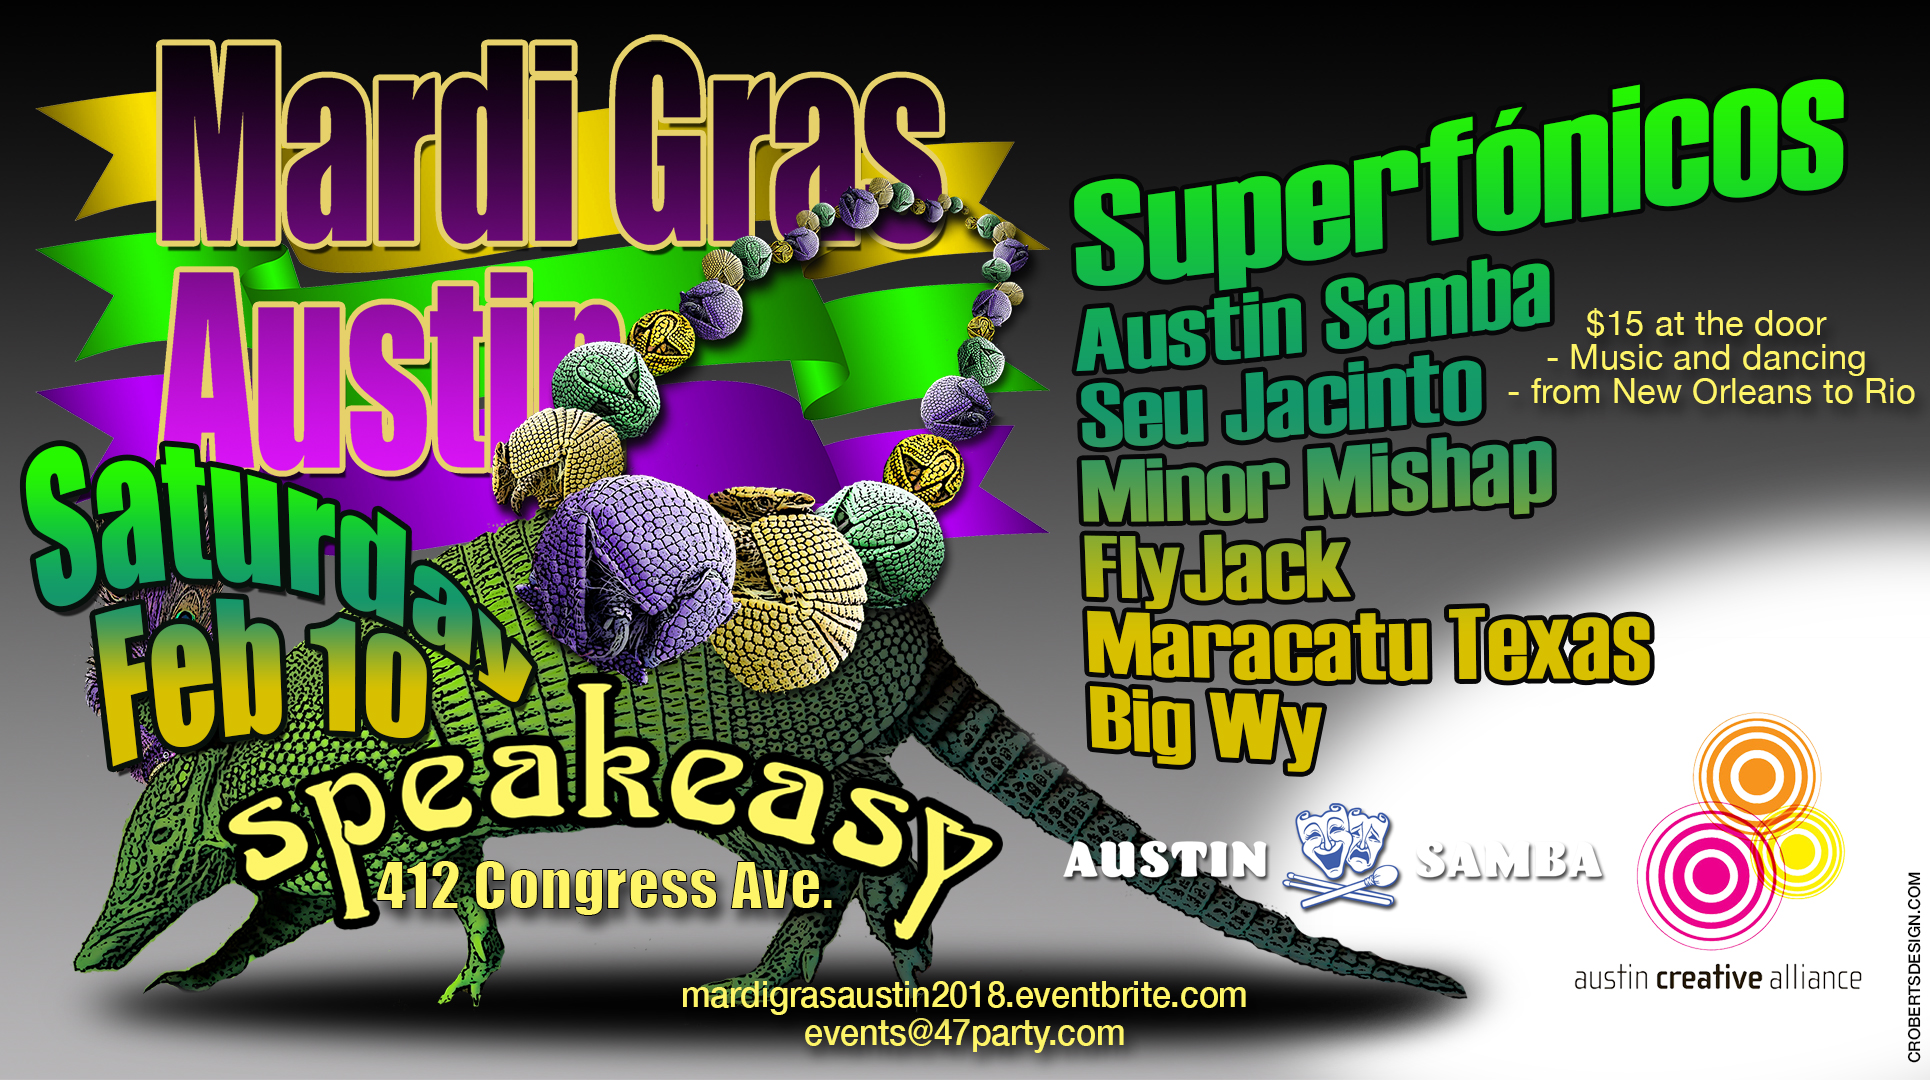 mardi gras austin horizontal version